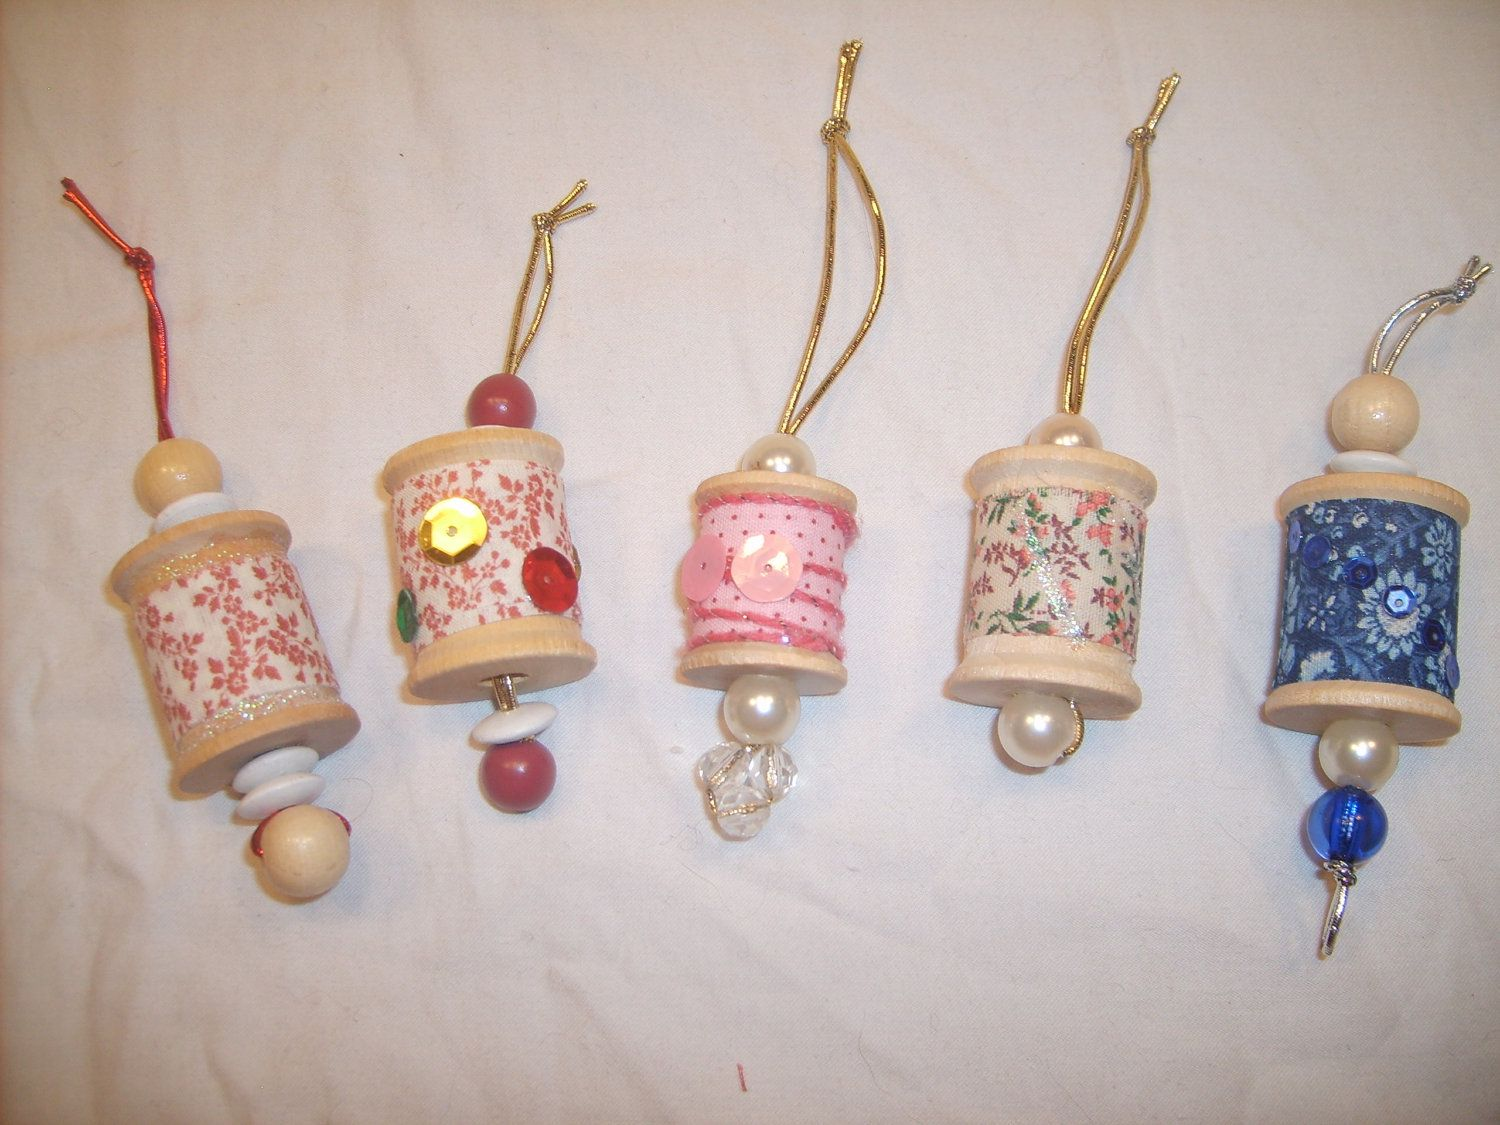 Wooden Thread Spools Recycled Into Cute Ornaments For Your